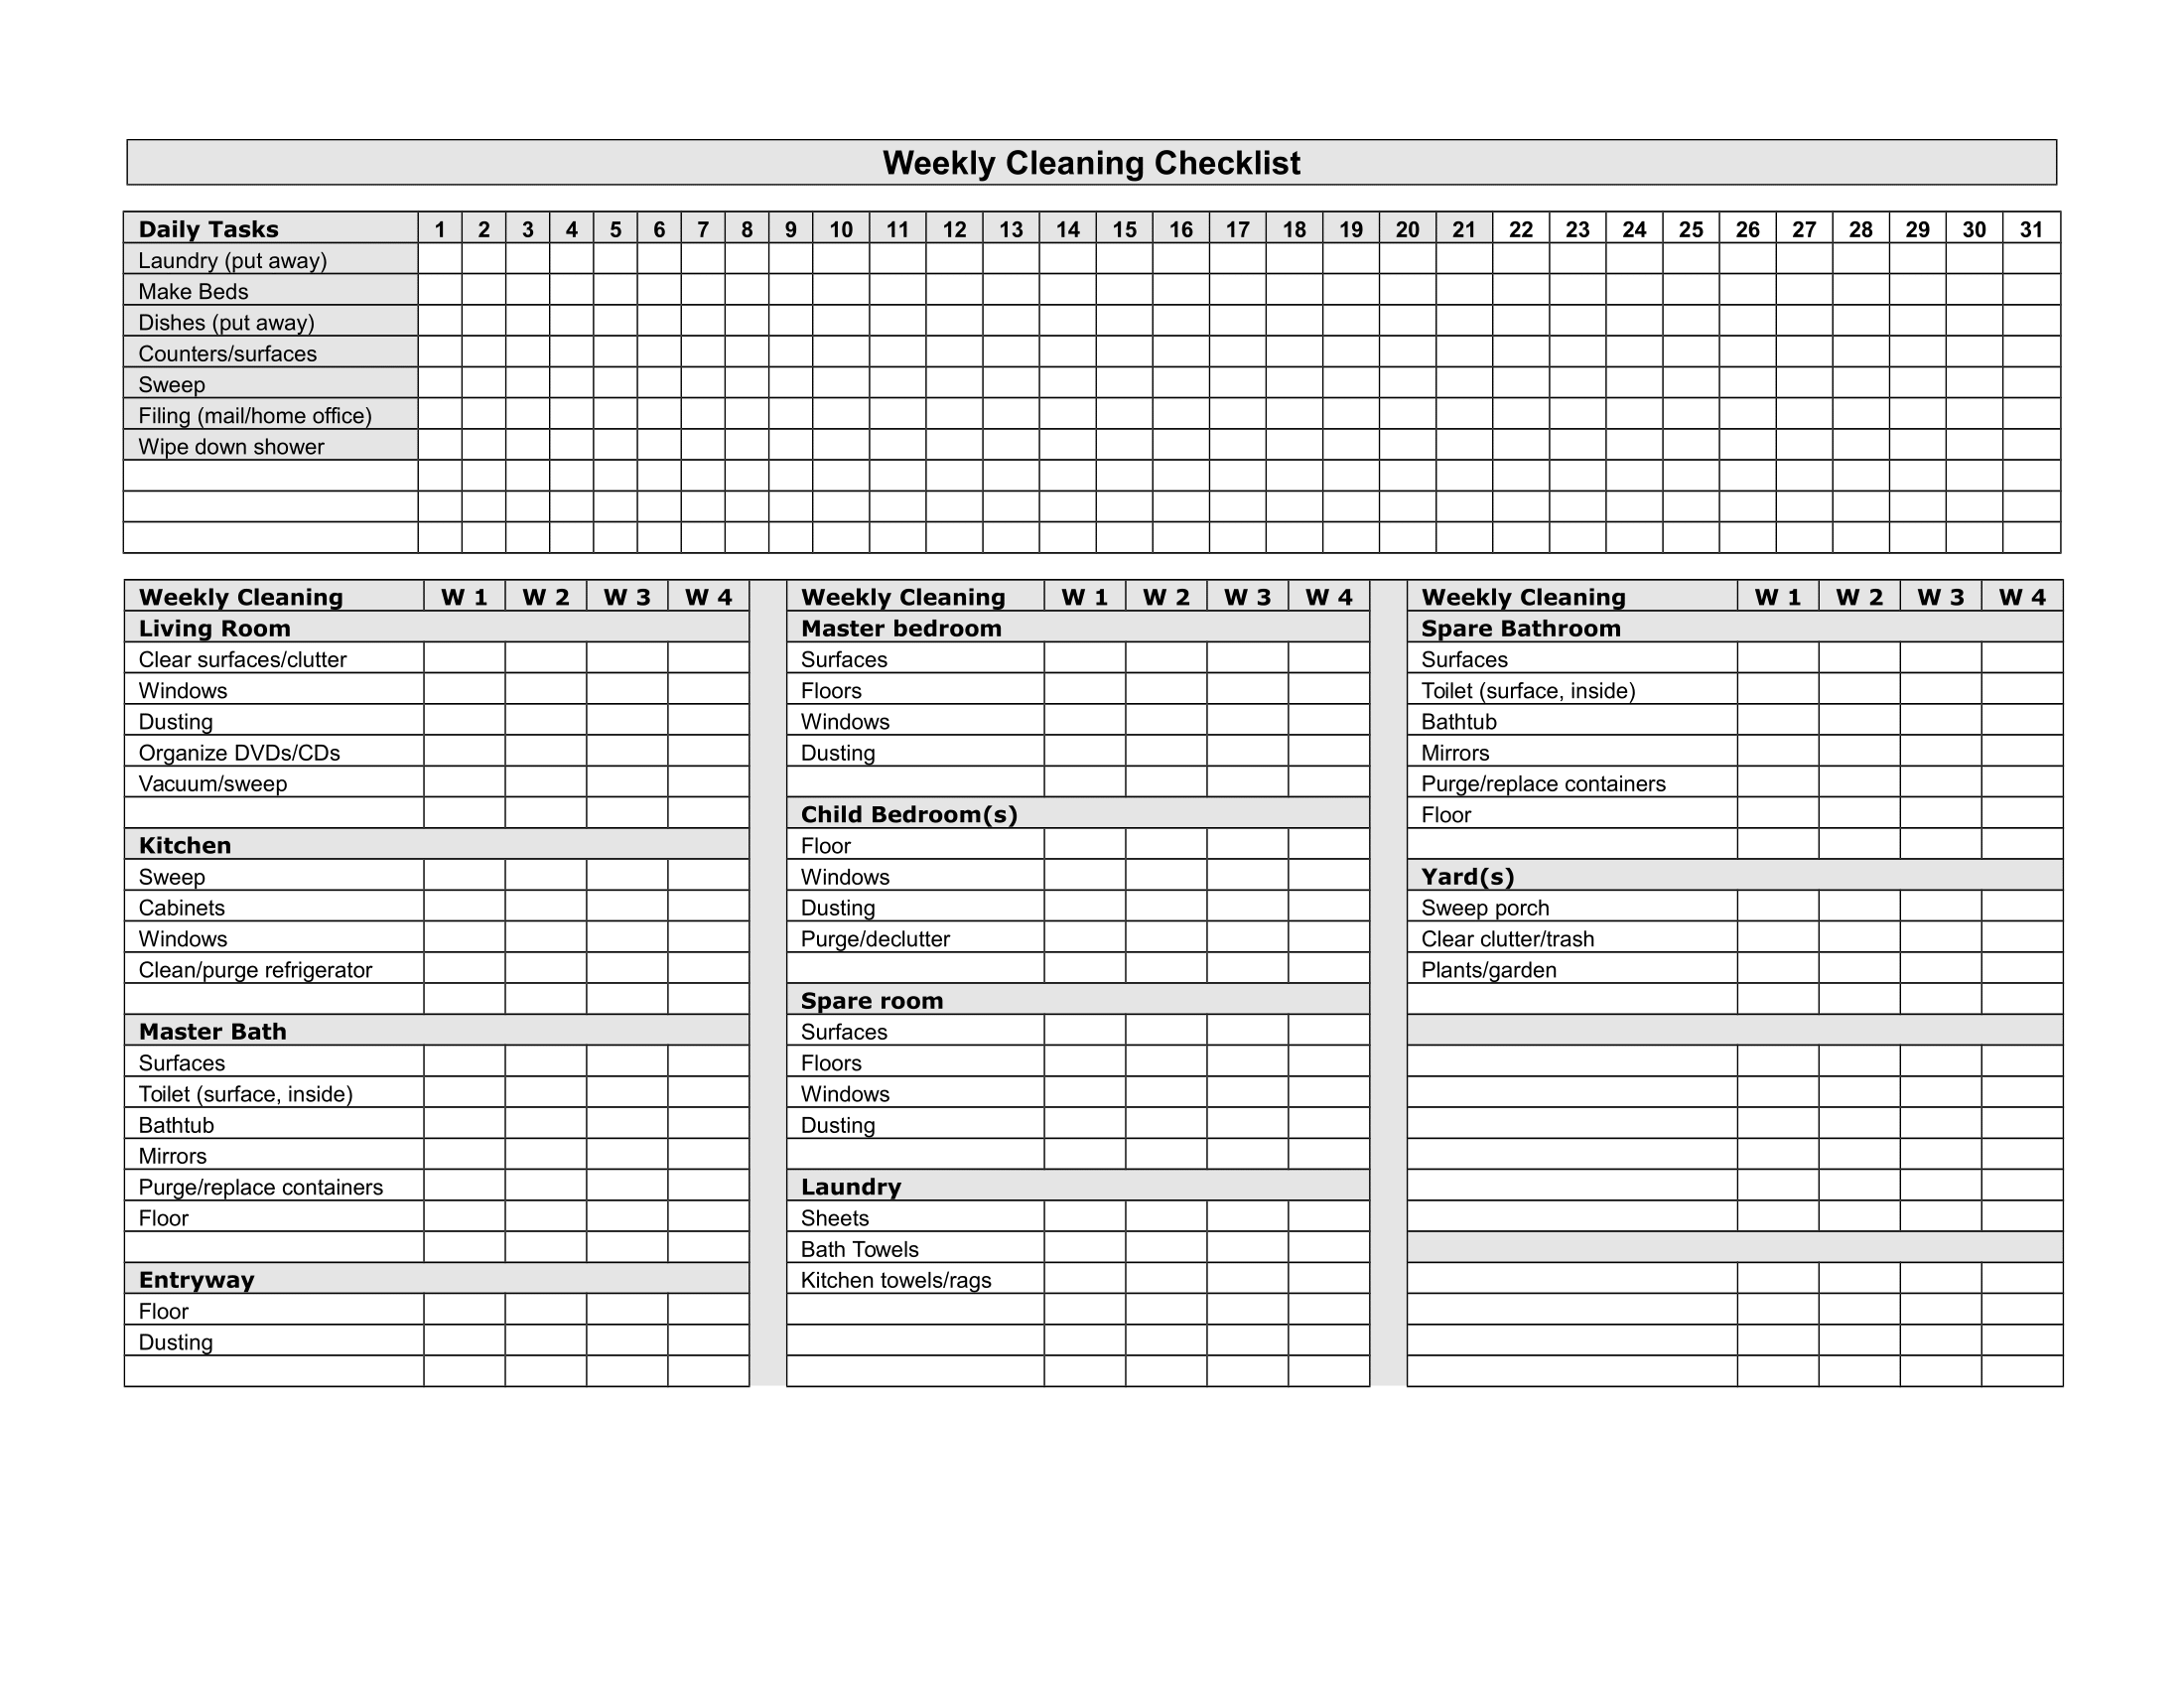 Weekly Cleaning Checklist Free Printable Template